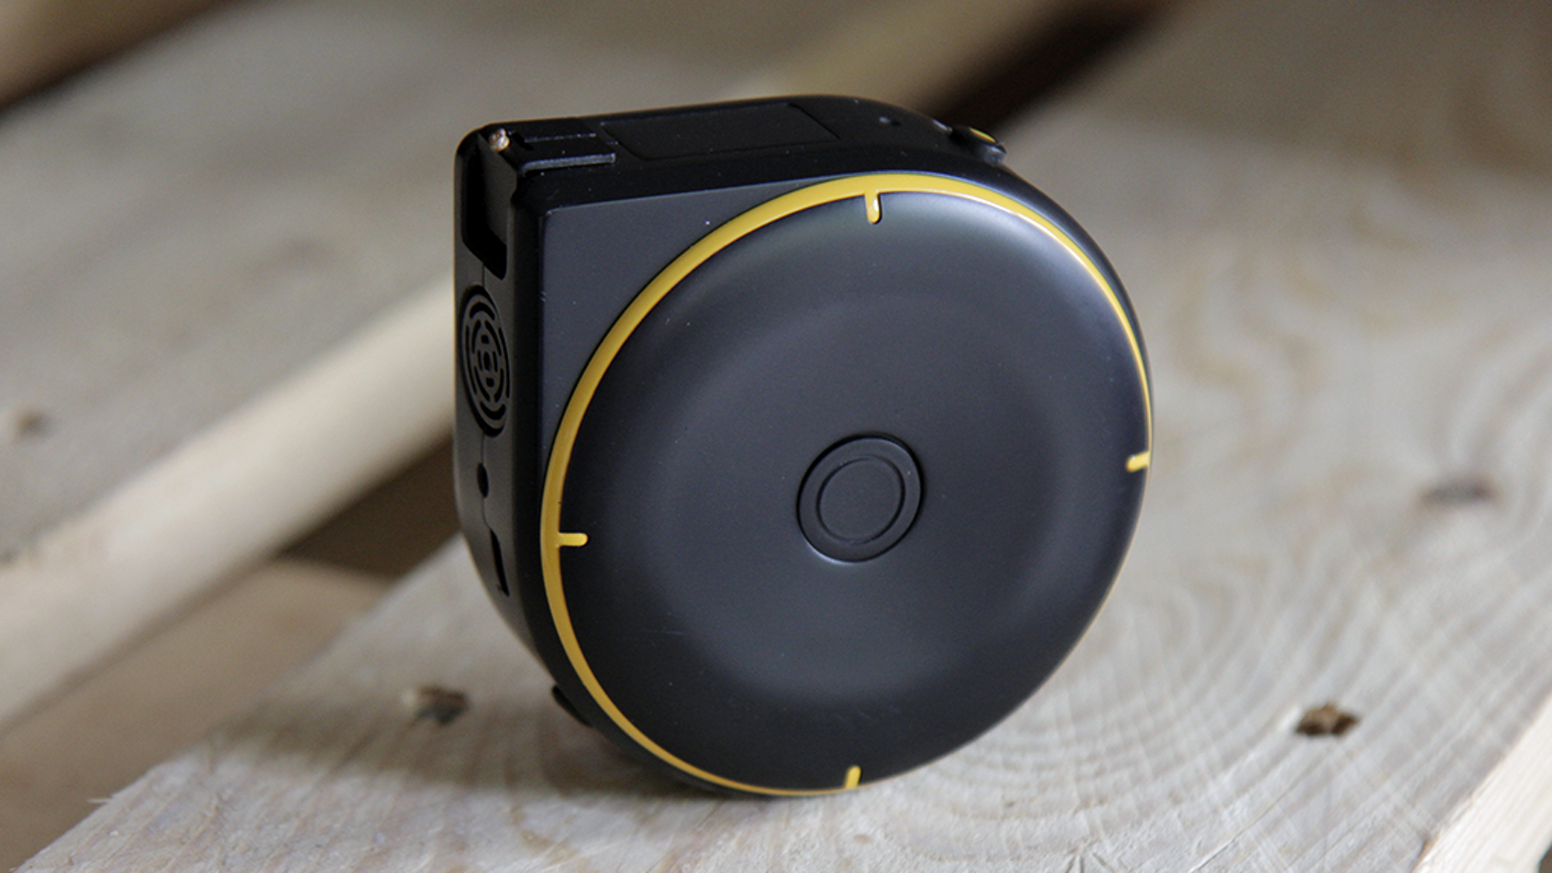 Bagel is a digital tape measure that helps you measure, organize, and analyze any size measurements in a smart way.